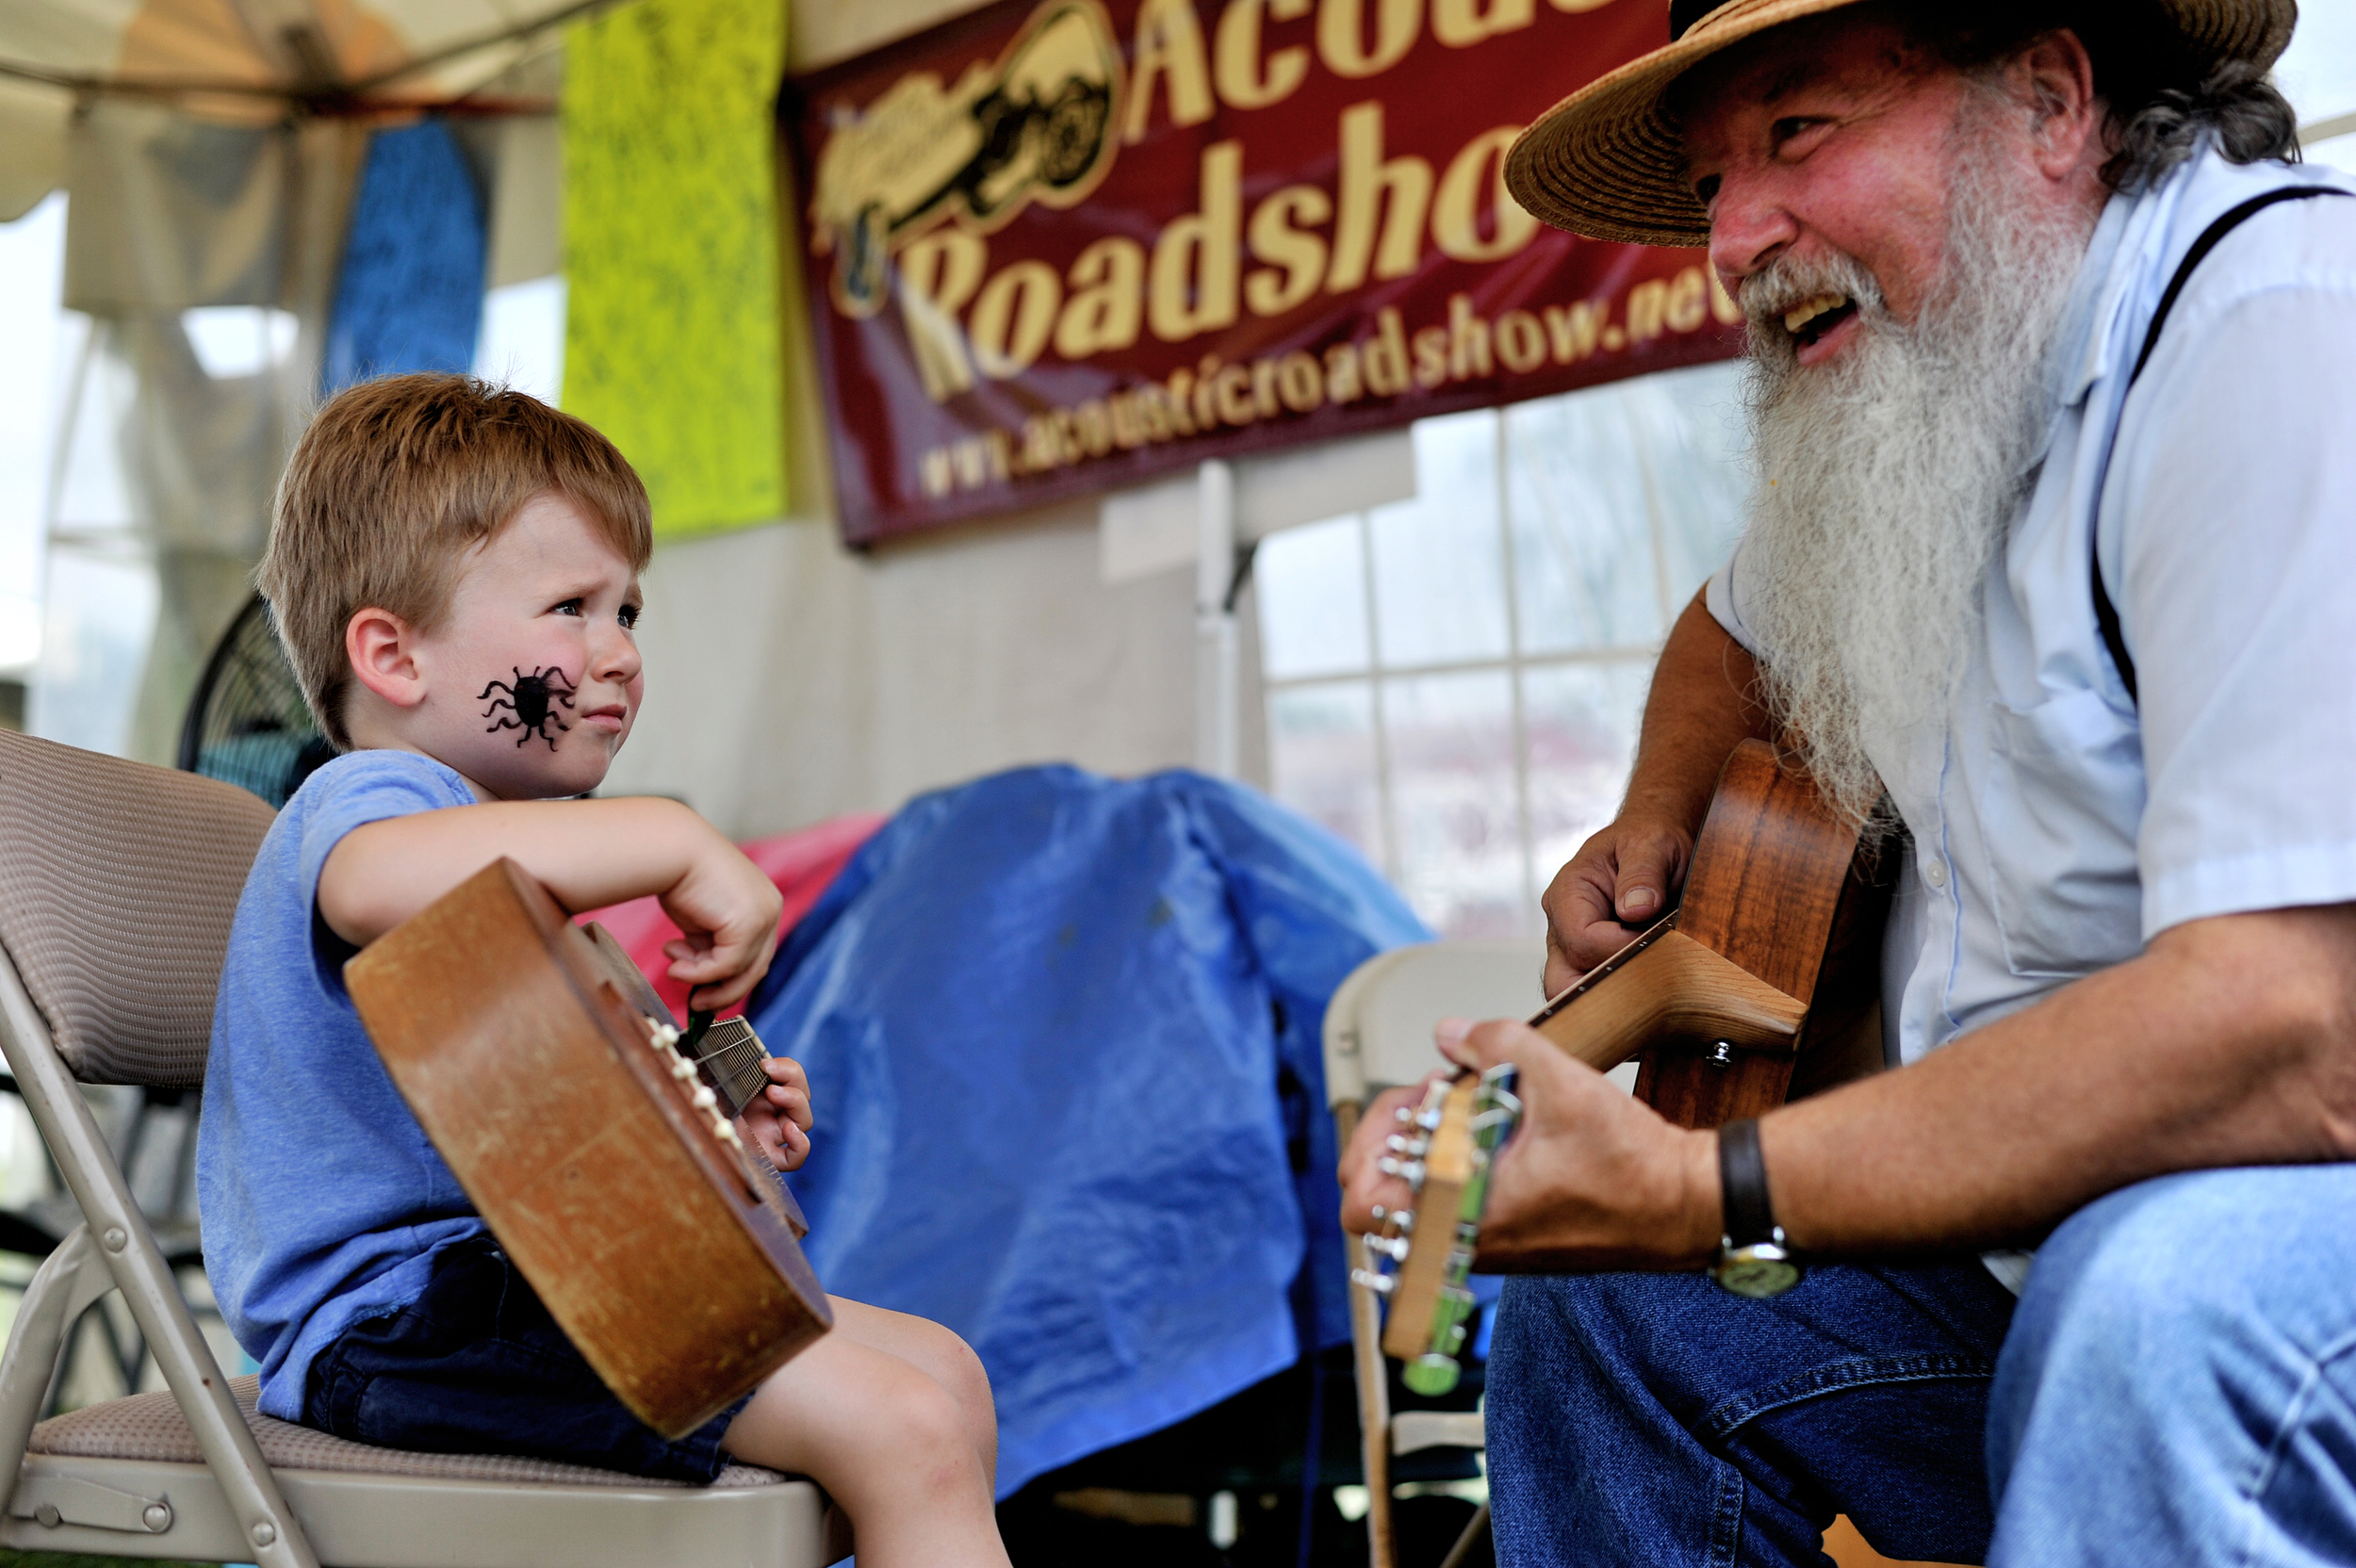 Lukas Cook, 2, of Branchburg, NJ, and Butch Imhoff of Hamburg play together at the Kutztown Folk Festival in Kutztown, PA, on July 5, 2016. (Reading Eagle: Sarah Stier)